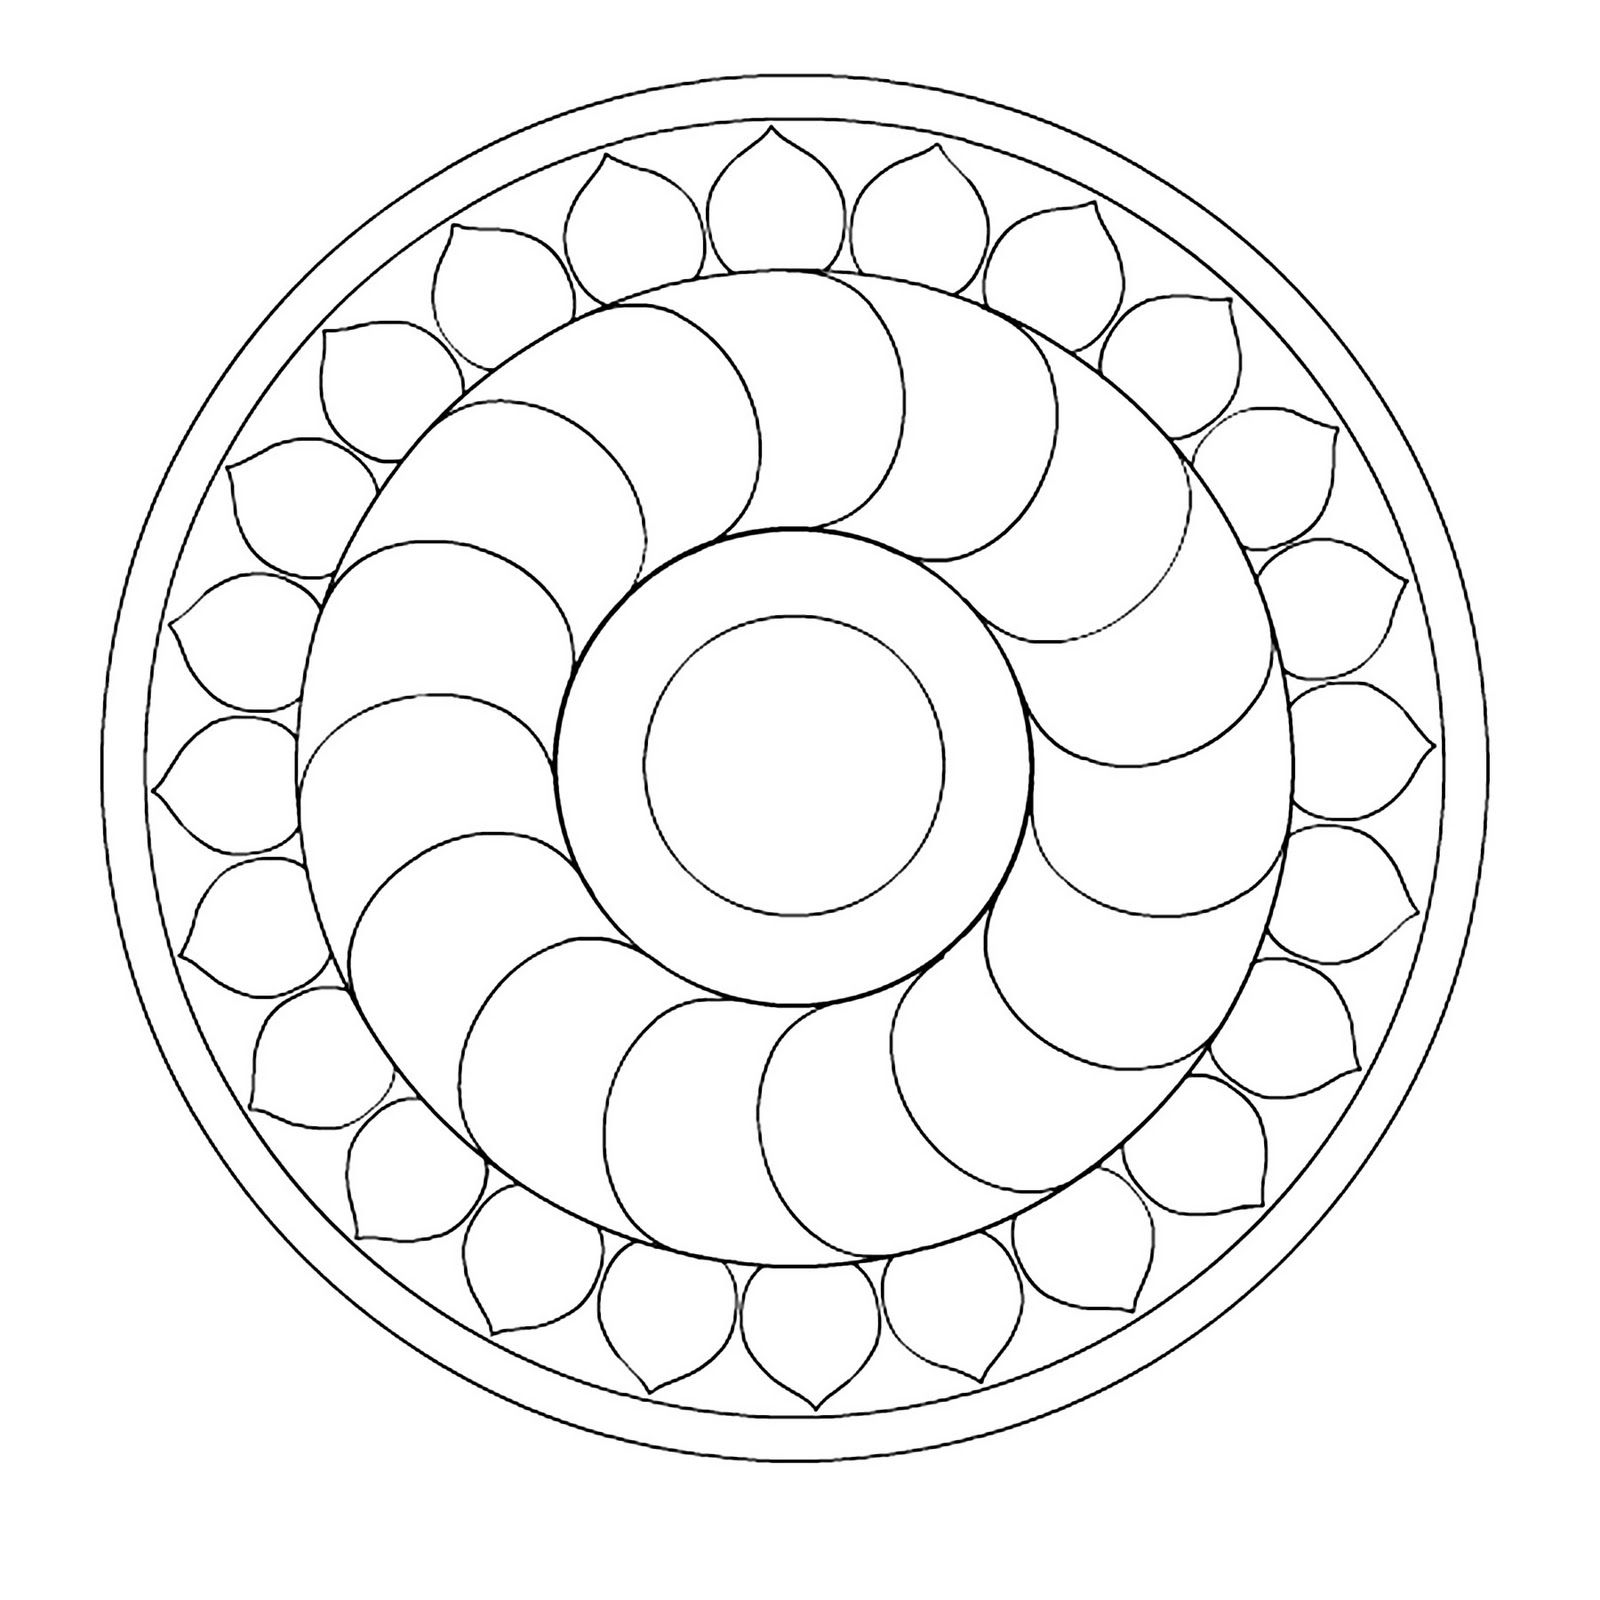 simple mandala coloring pages printable free printable mandalas - Simple Mandala Coloring Pages Kid